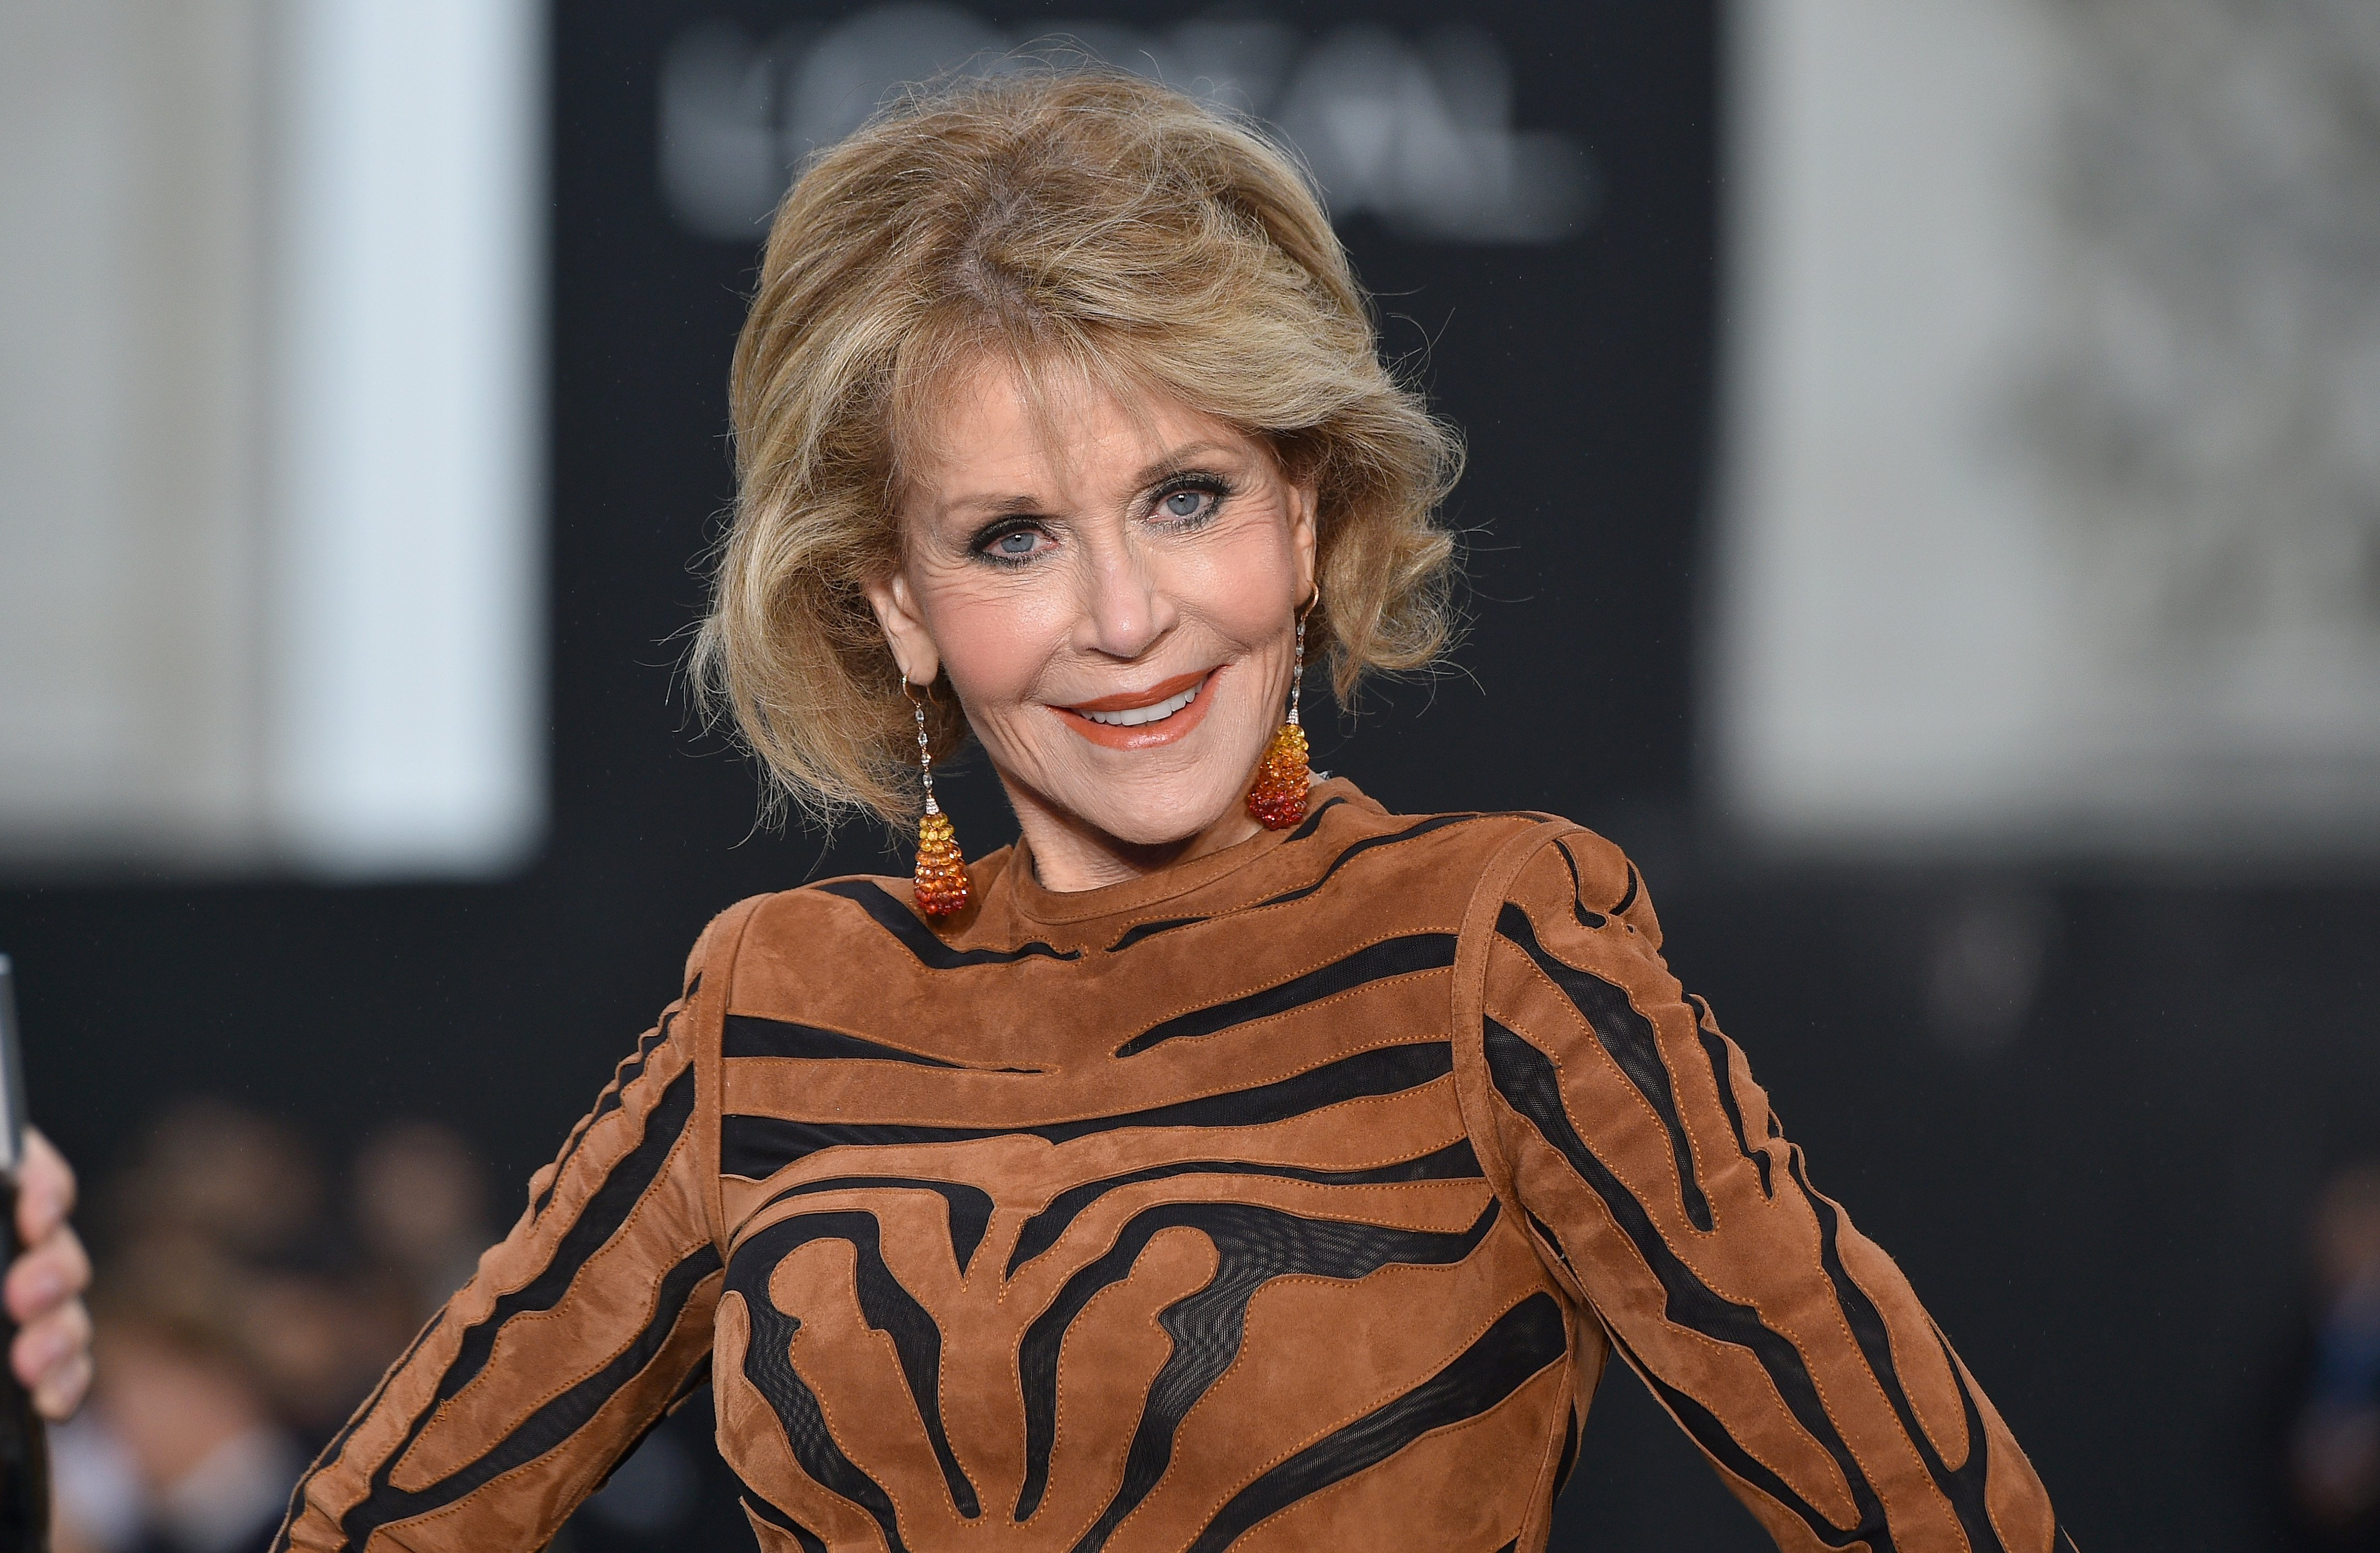 Jane Fonda at the rehearsal before Le Defile L'Oreal Paris as part of Paris Fashion Week Womenswear Spring/Summer 2018 at Avenue Des Champs Elysees on October 1, 2017 in Paris, France | Photo: Getty Images